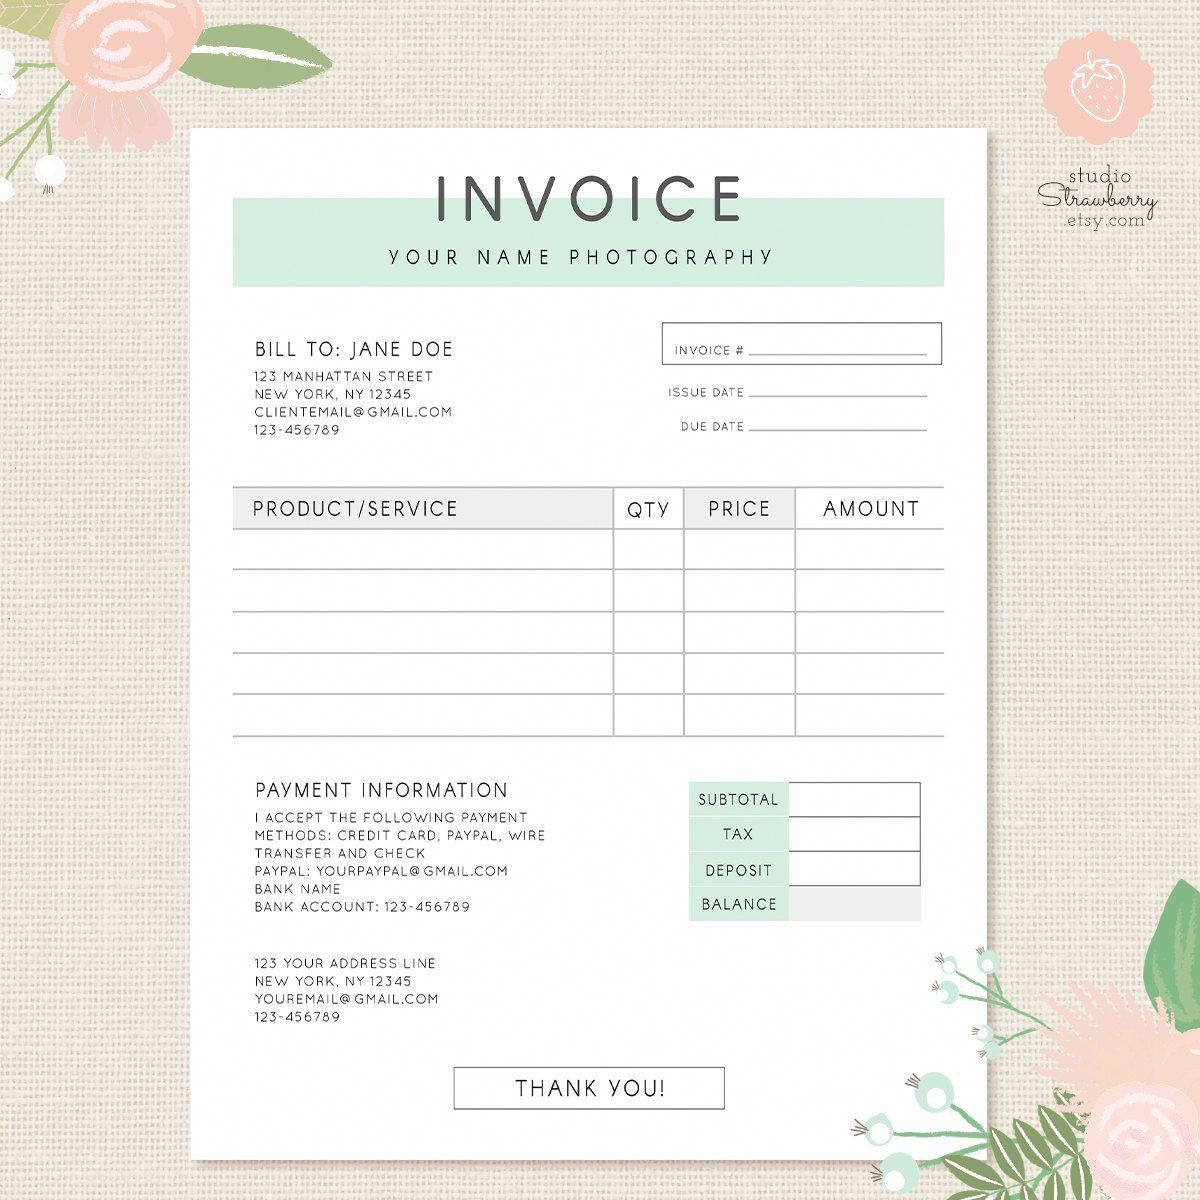 Invoice Template Photography Invoice Business Invoice Receipt Template For Photographers Photography Invoice Photography Invoice Template Invoice Template